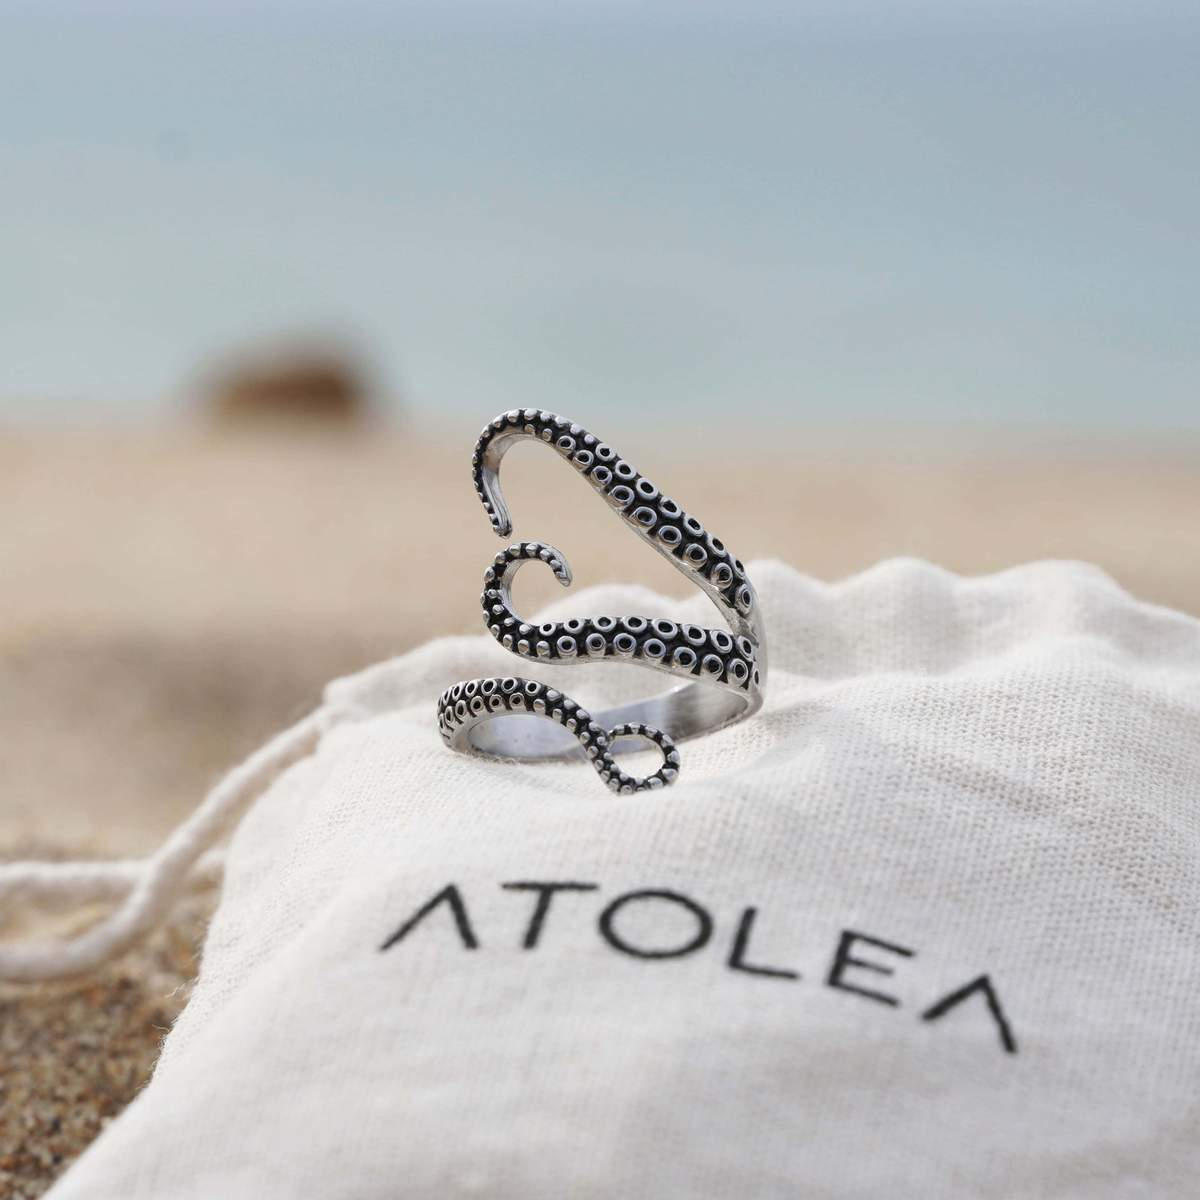 Octopus Jewelry Meaning